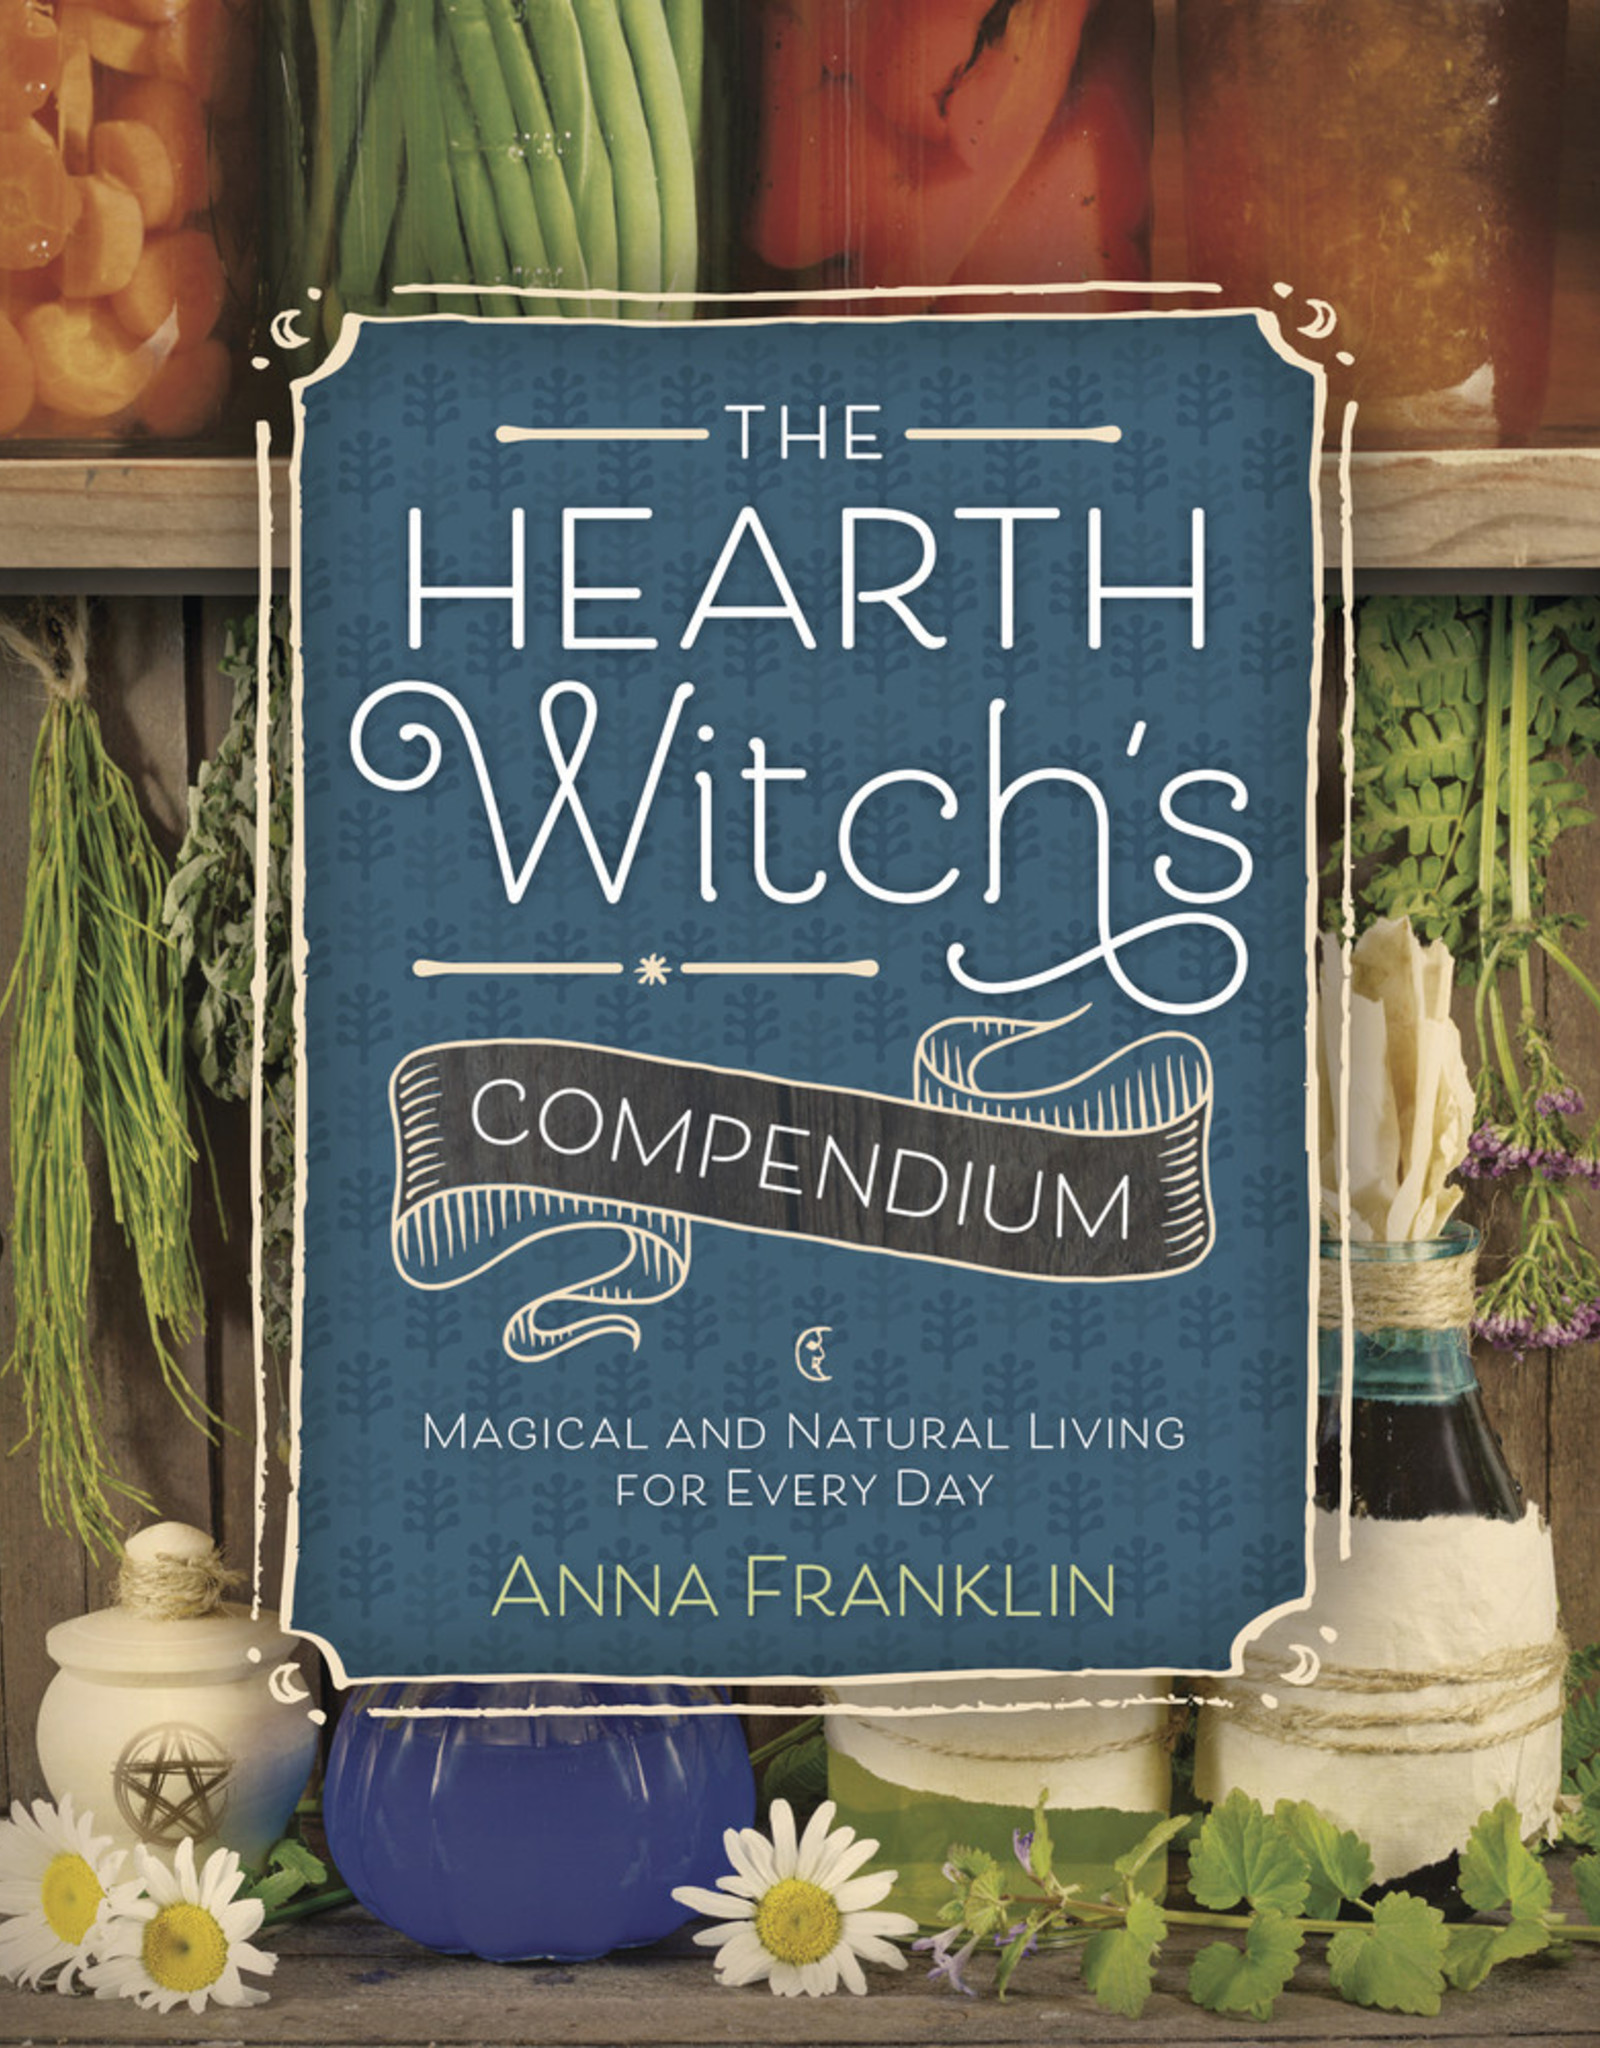 Llewelyn The Hearth Witch's Compendium